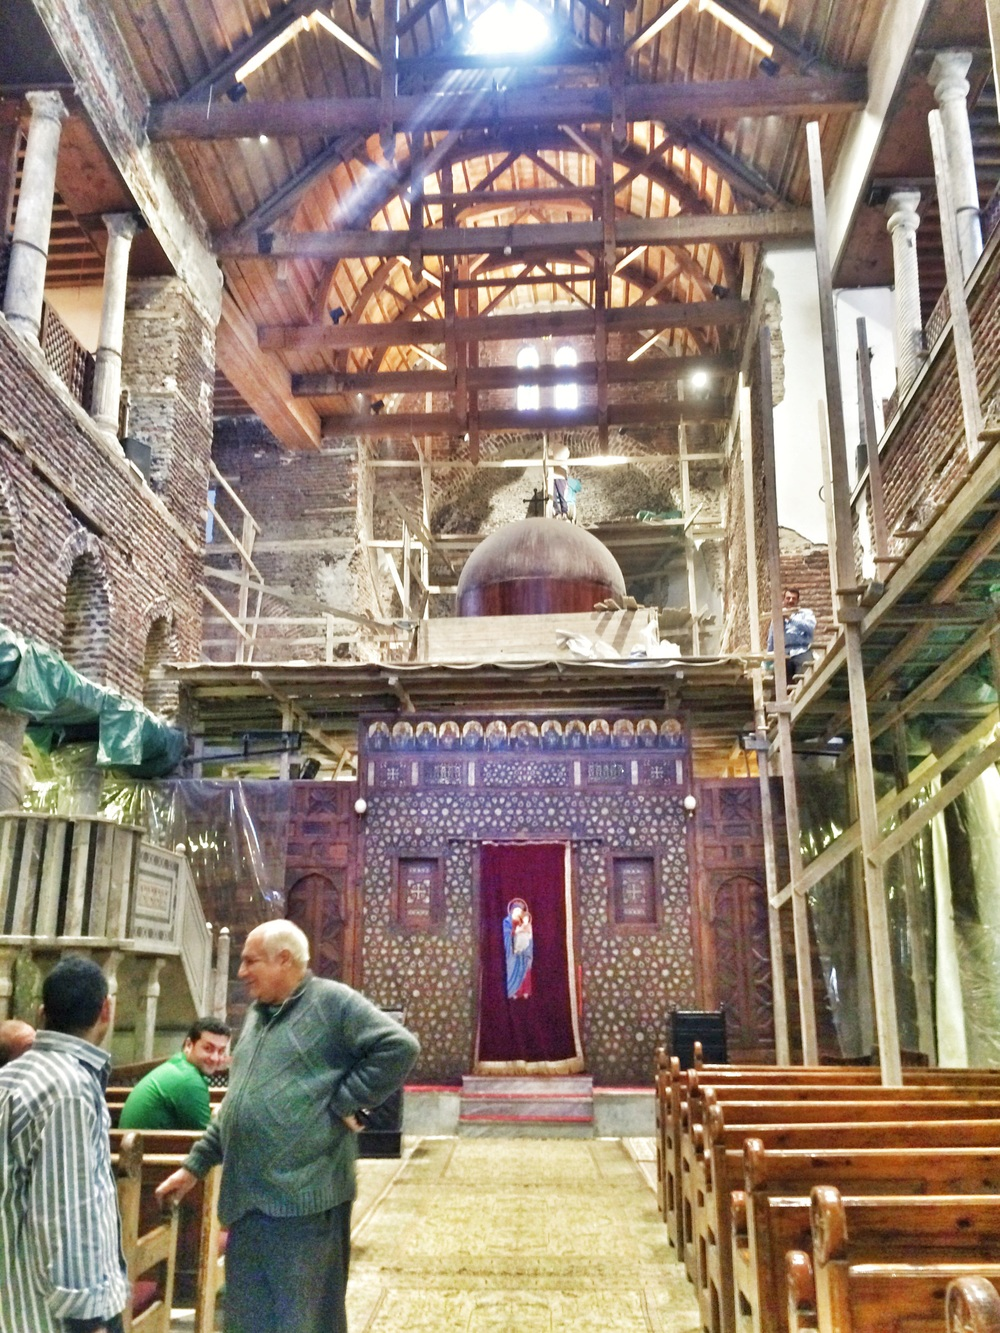 Inside Saint Sergius and Bacchus Church, where Mary, Joseph, and baby Jesus Christ rested at the end of their journey to Egypt